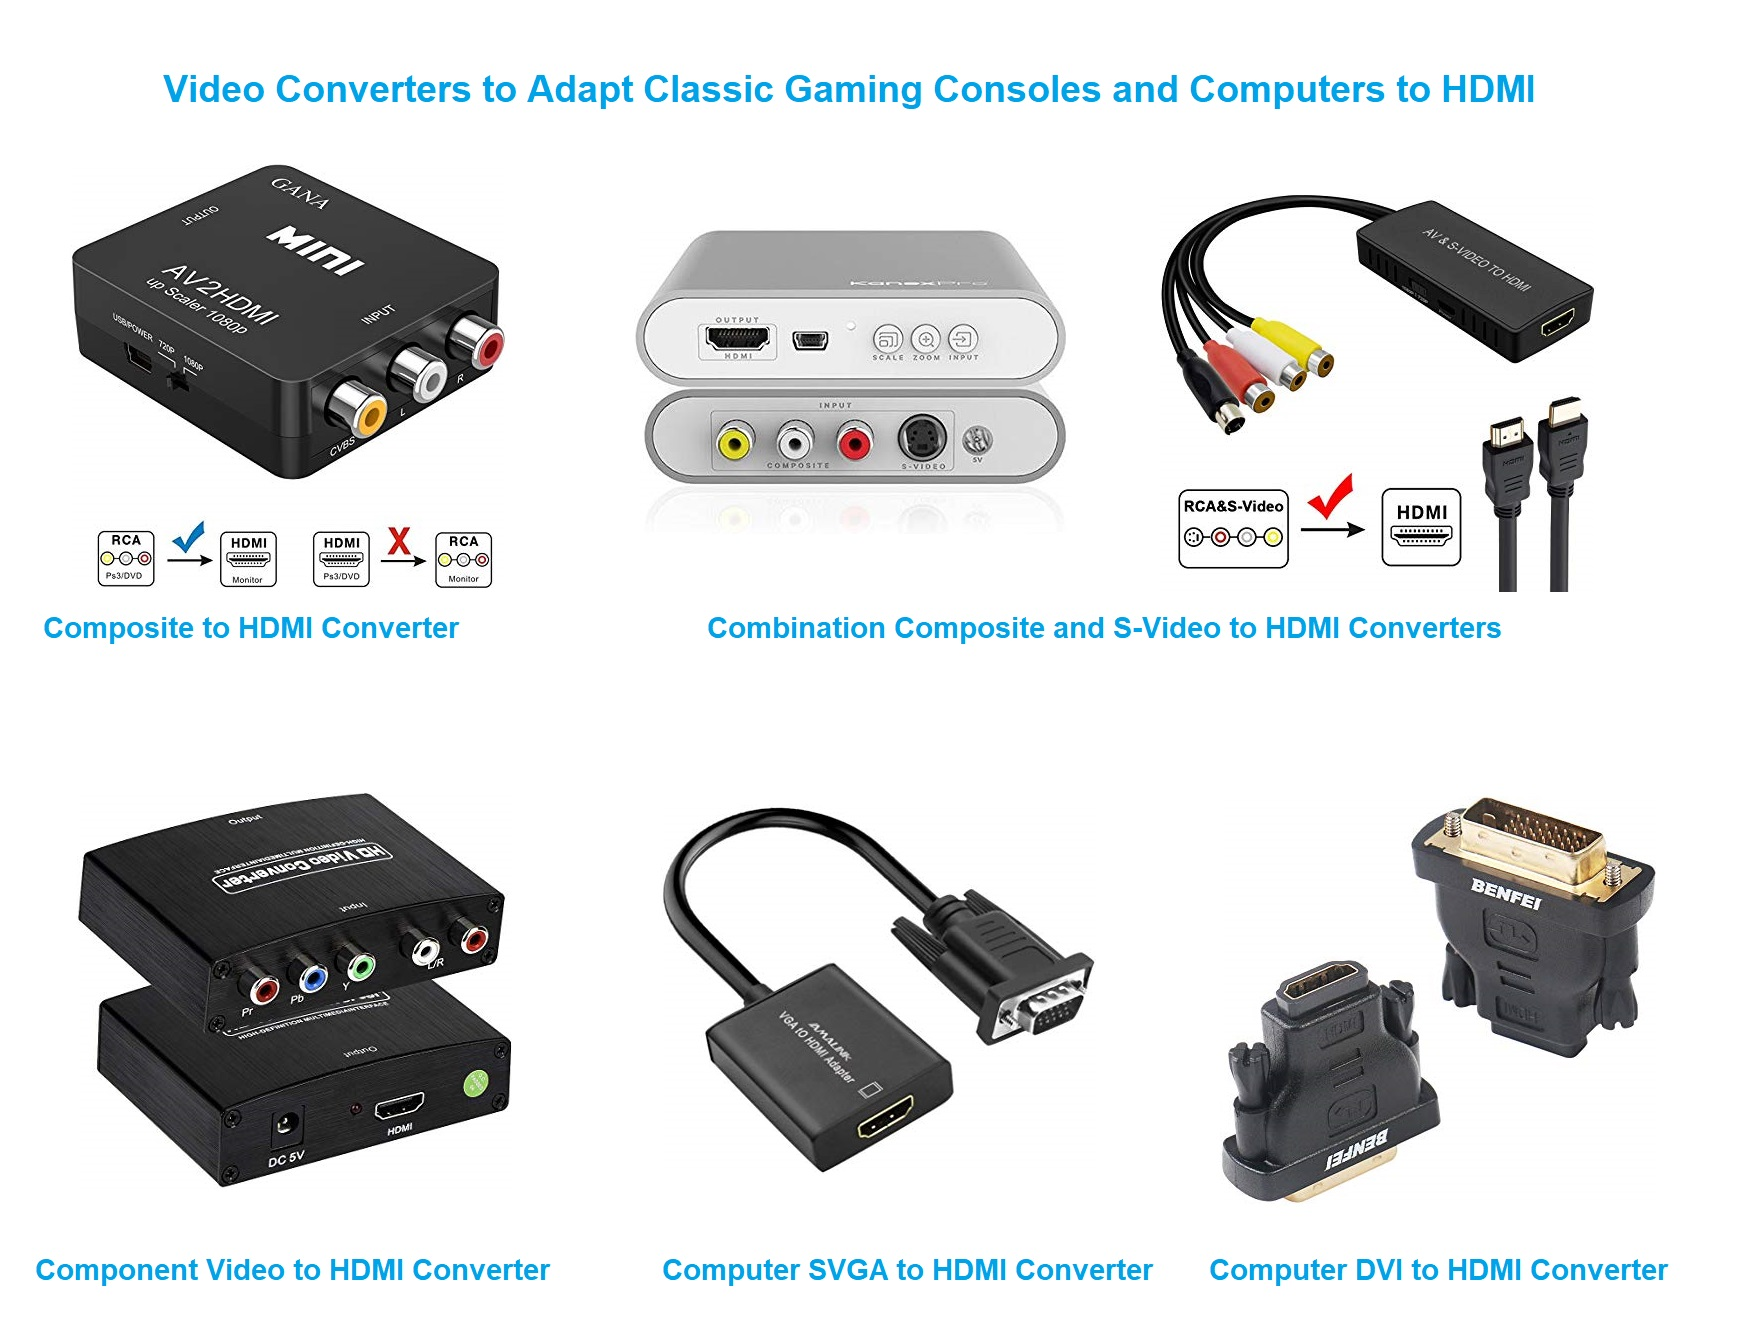 Video Converters for Classic Gaming Consoles and Computers